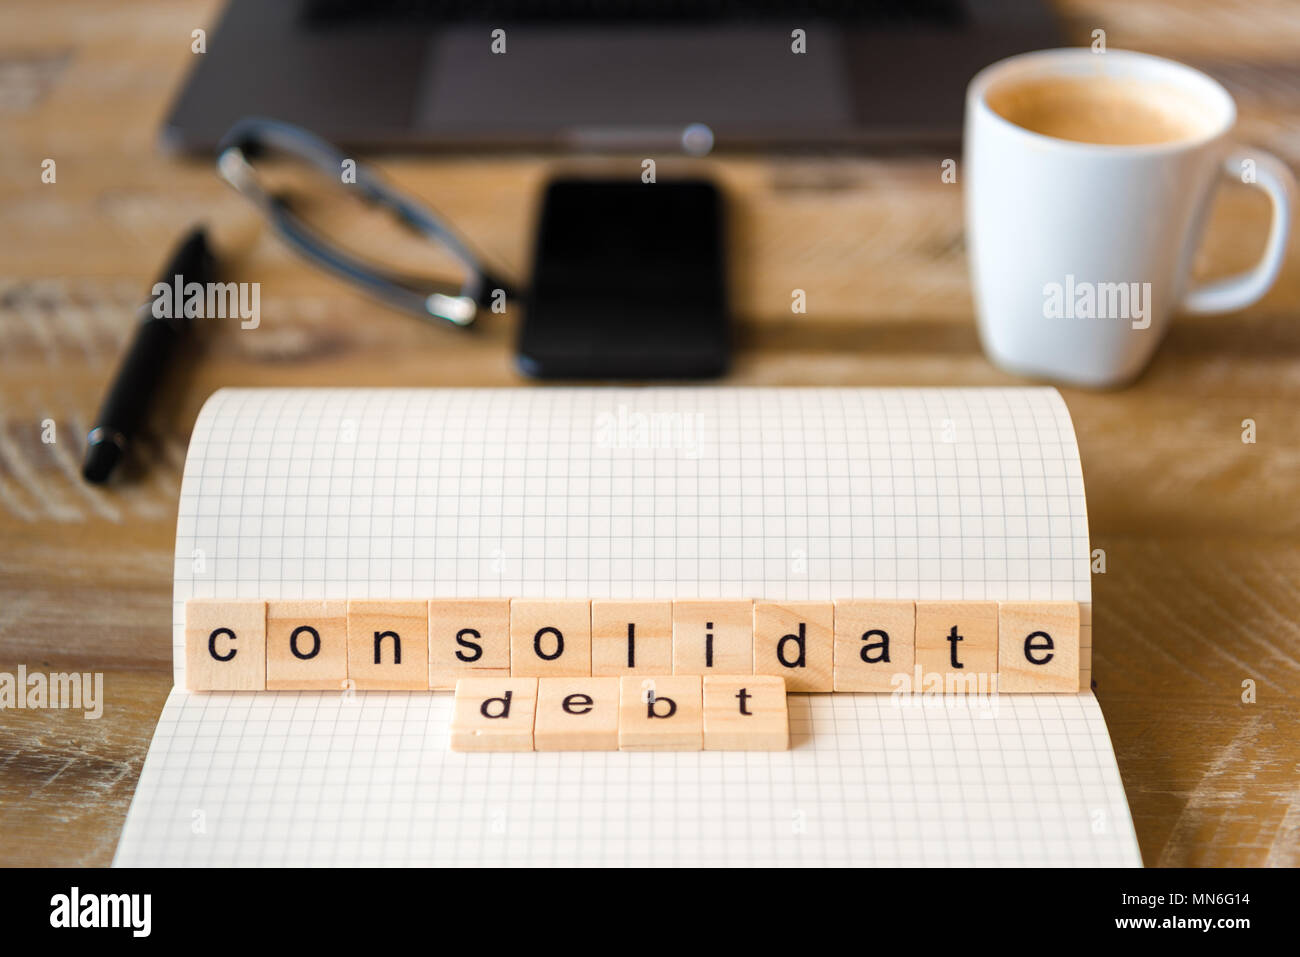 Closeup on notebook over wood table background, focus on wooden blocks with letters making Consolidate Debt words. Business concept image. Laptop, gla - Stock Image